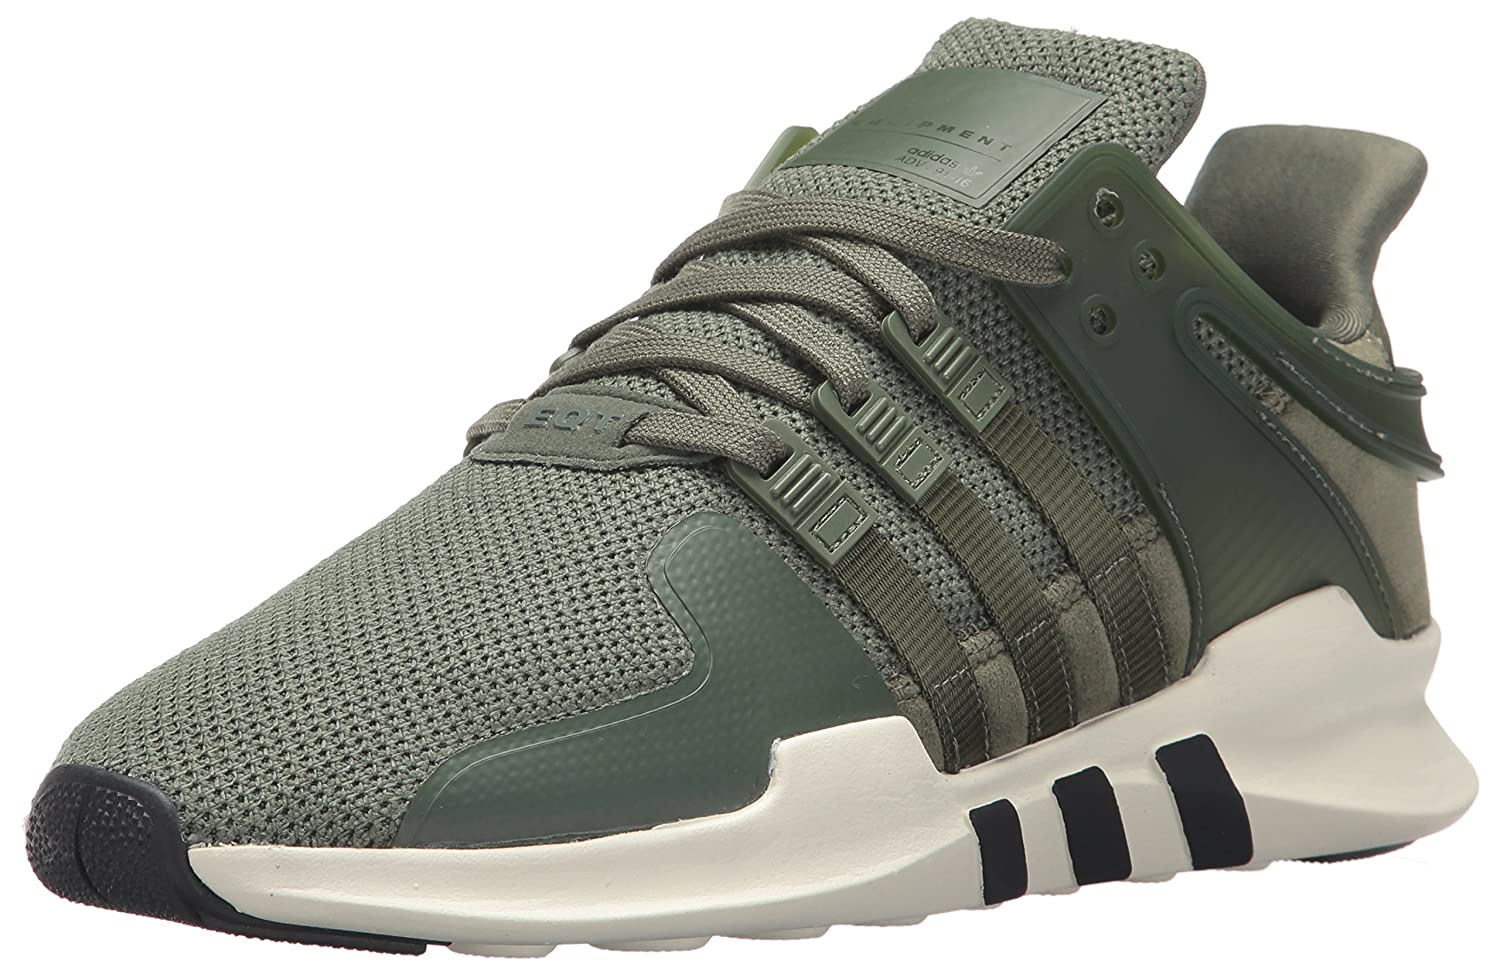 adidas Originals Women's EQT Support Adv W B06XPN77QT 11 B(M) US|St Major/St Major/Off White